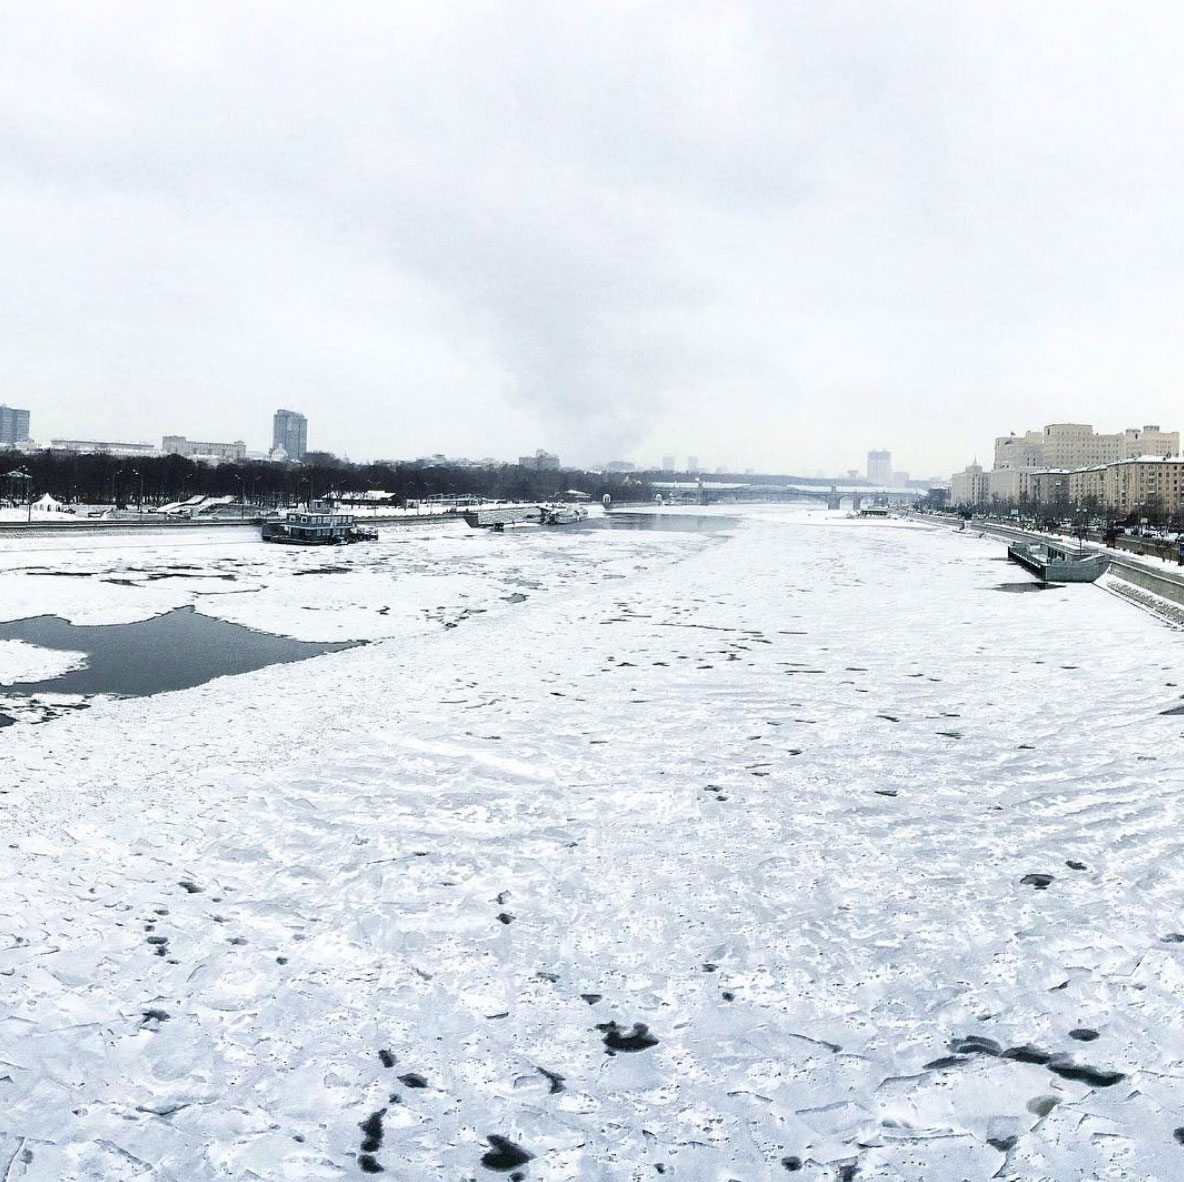 Frozen river in Moscow, Russia